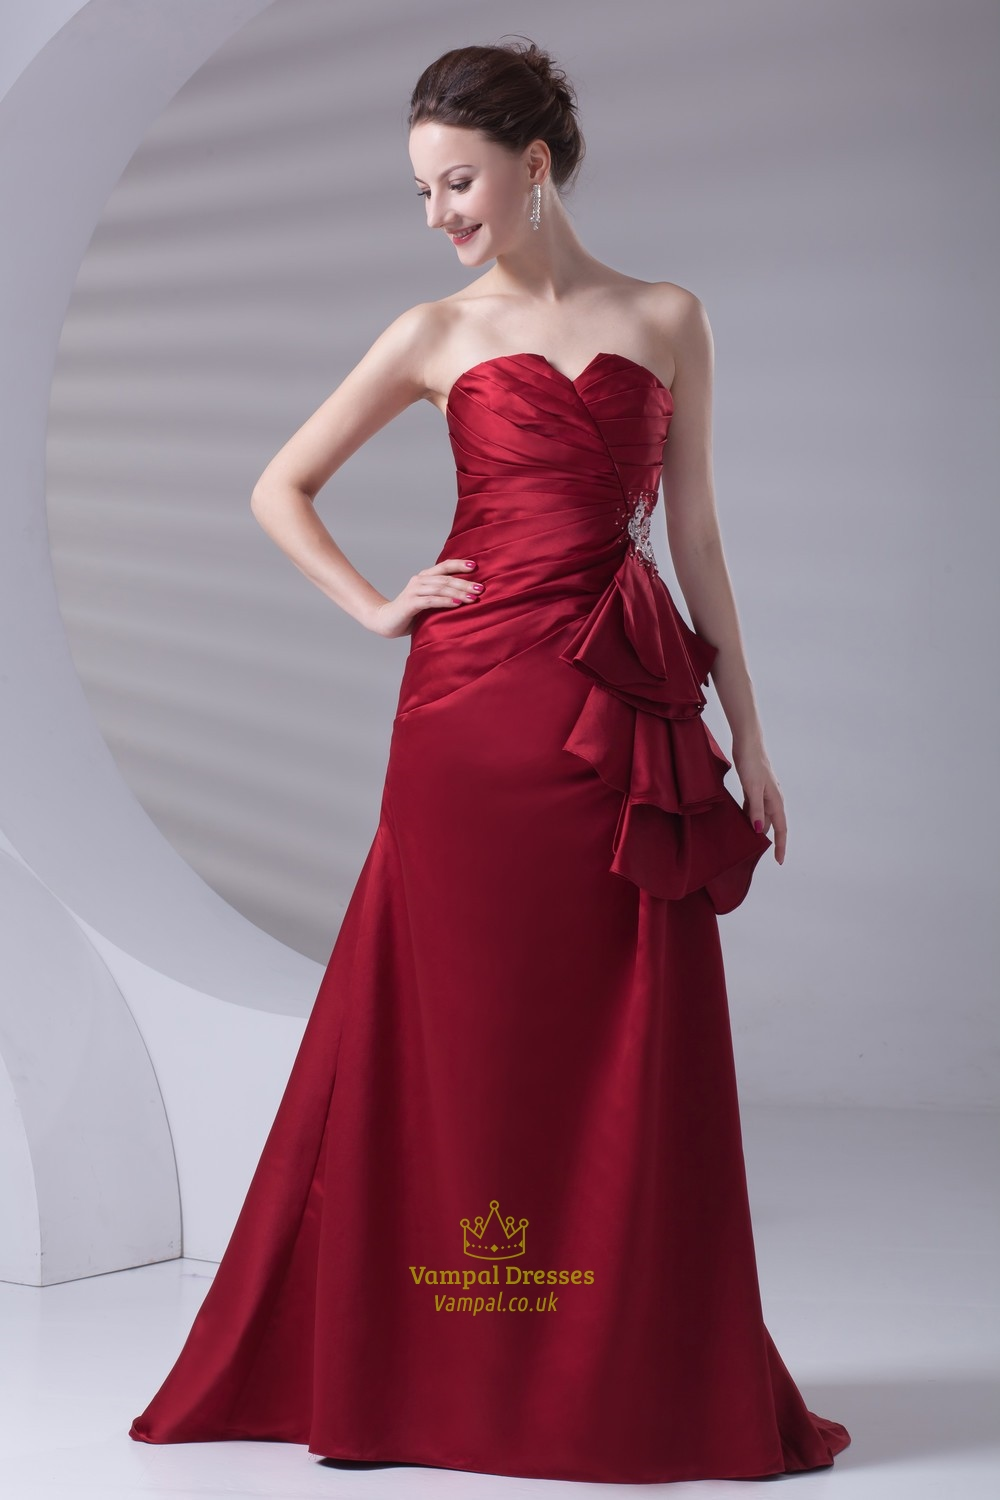 Distinct Red Satin Strapless Floor Length Ruffles Prom